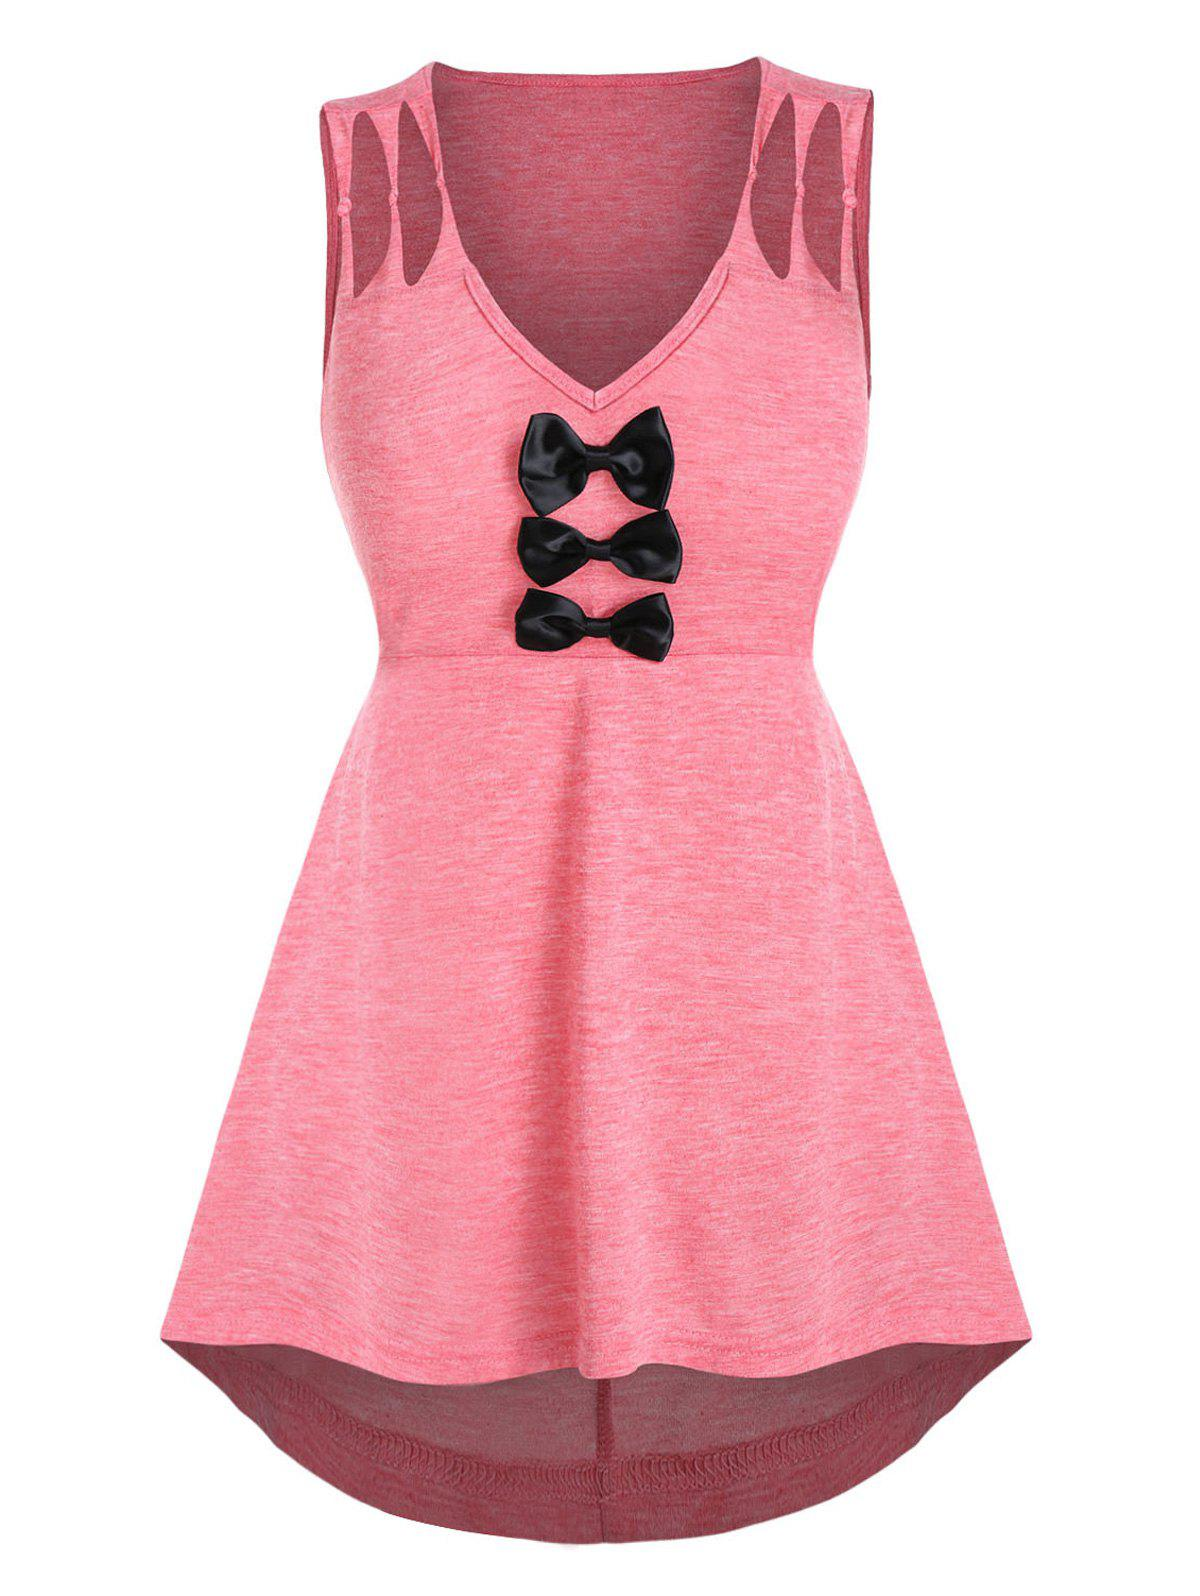 Space Dye Print Bow Detail Knotted Tank Top - FLAMINGO PINK L